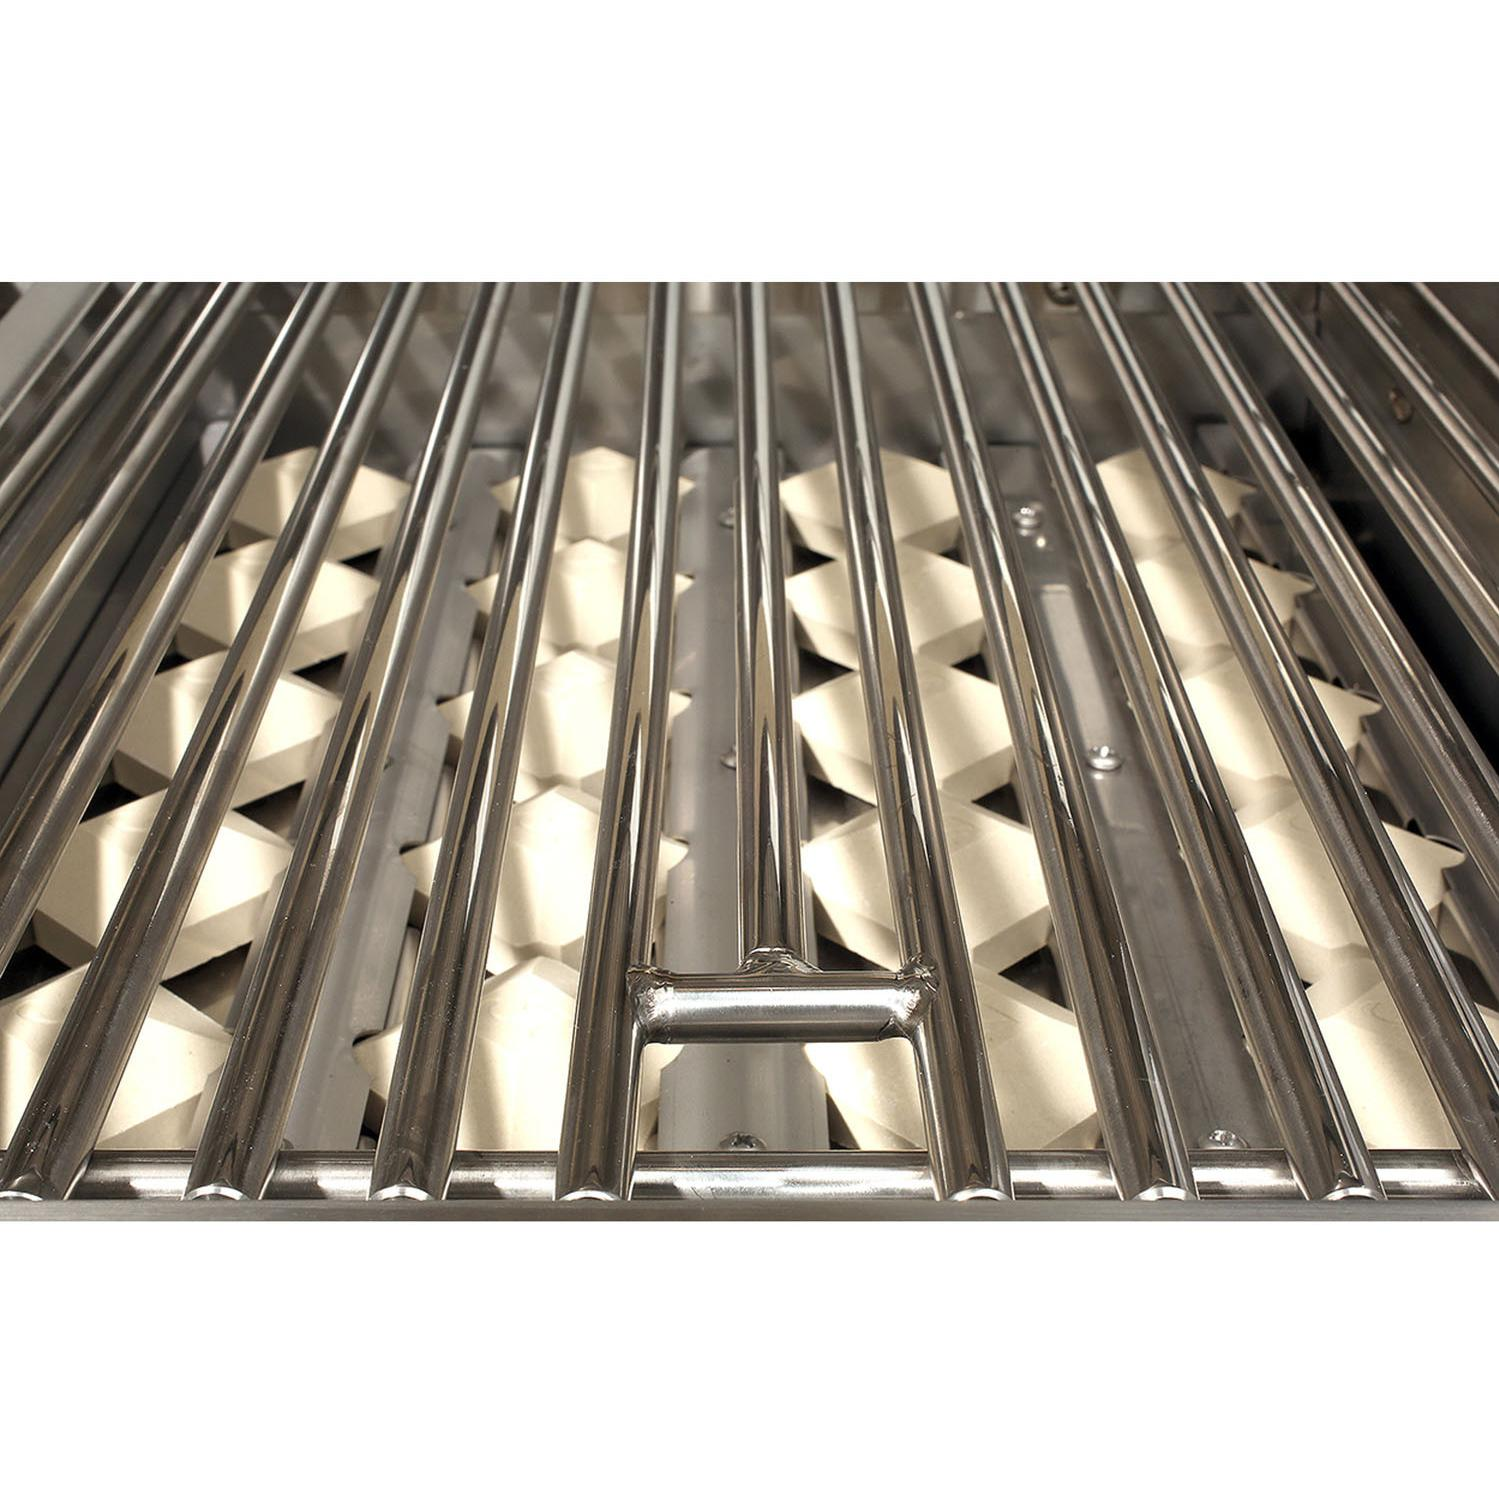 Alfresco Gas Grills ALXE 30-Inch Built-In NG Grill - Briquettes